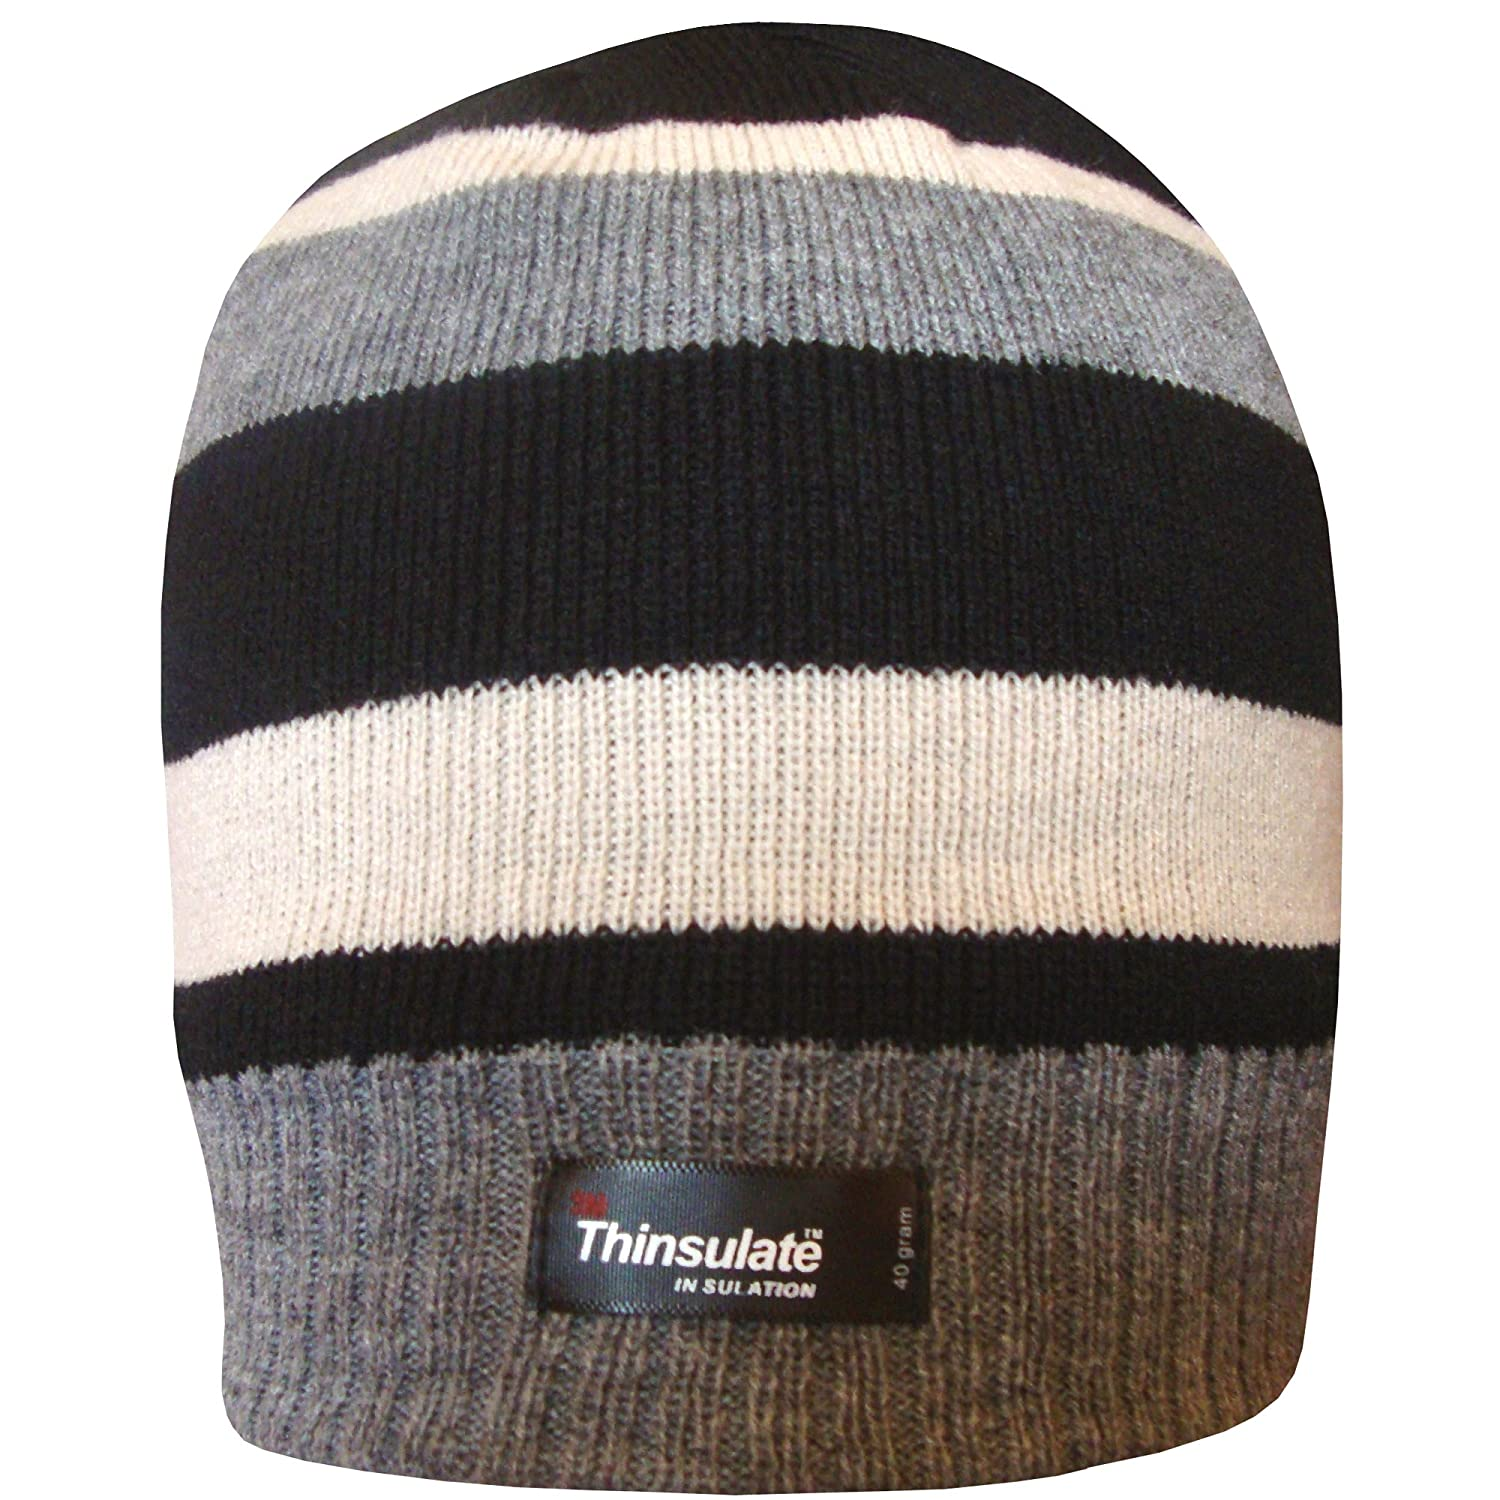 Boy s Black Thinsulate Stripy Thermal Winter Beanie Hat with Fleece Lining   Amazon.co.uk  Clothing 5447ad58453